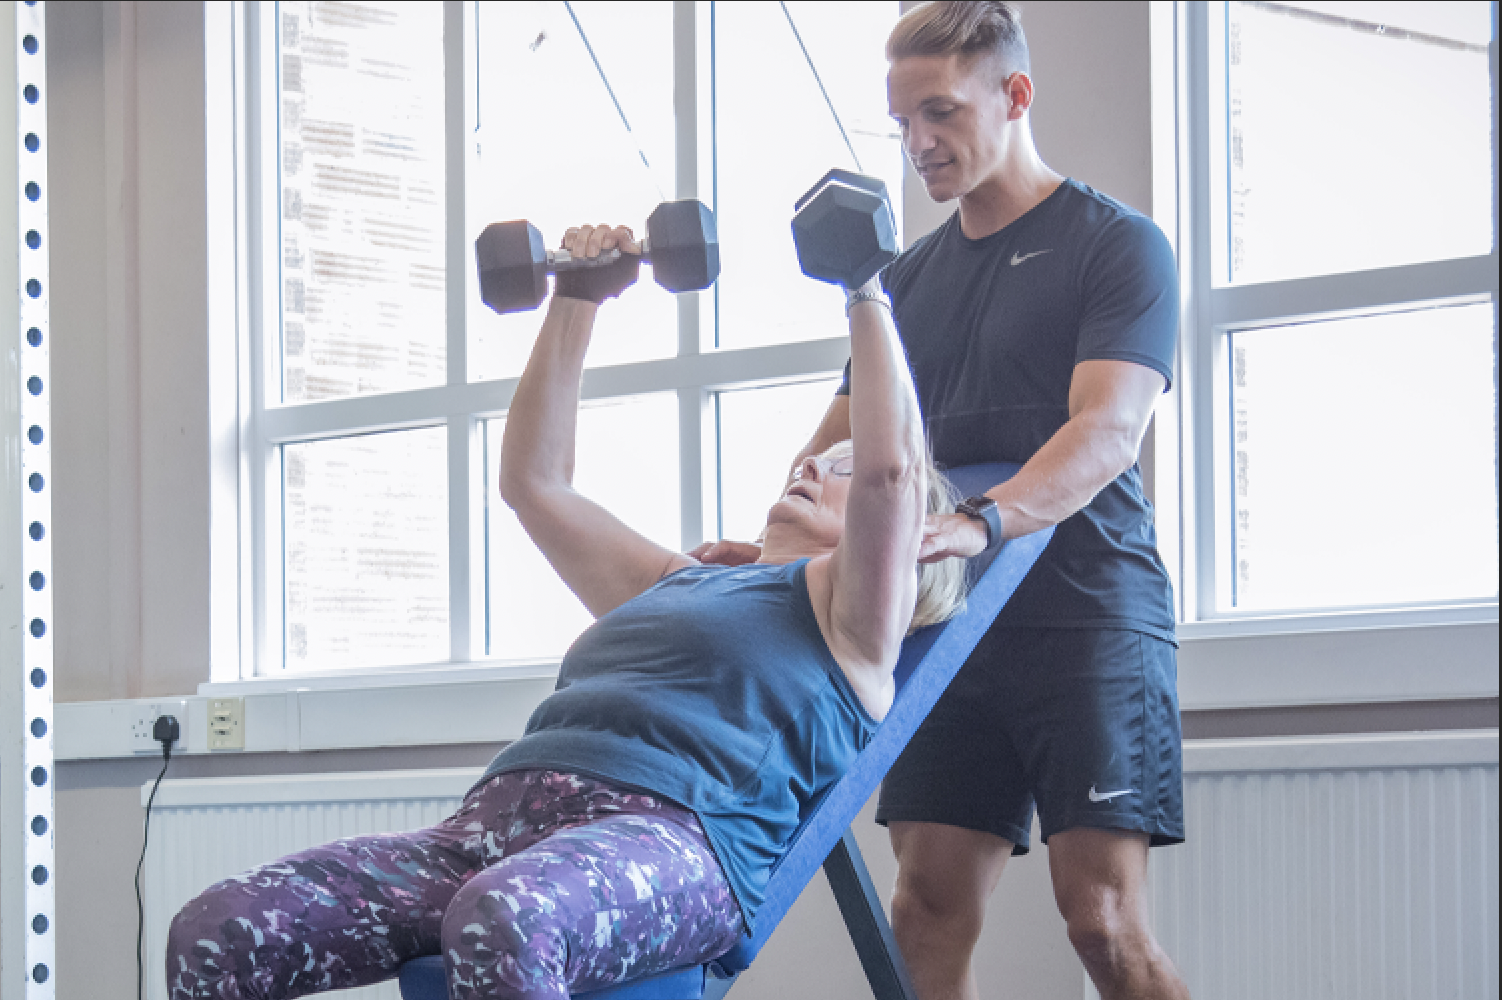 Full Time Personal Trainer - Bedford